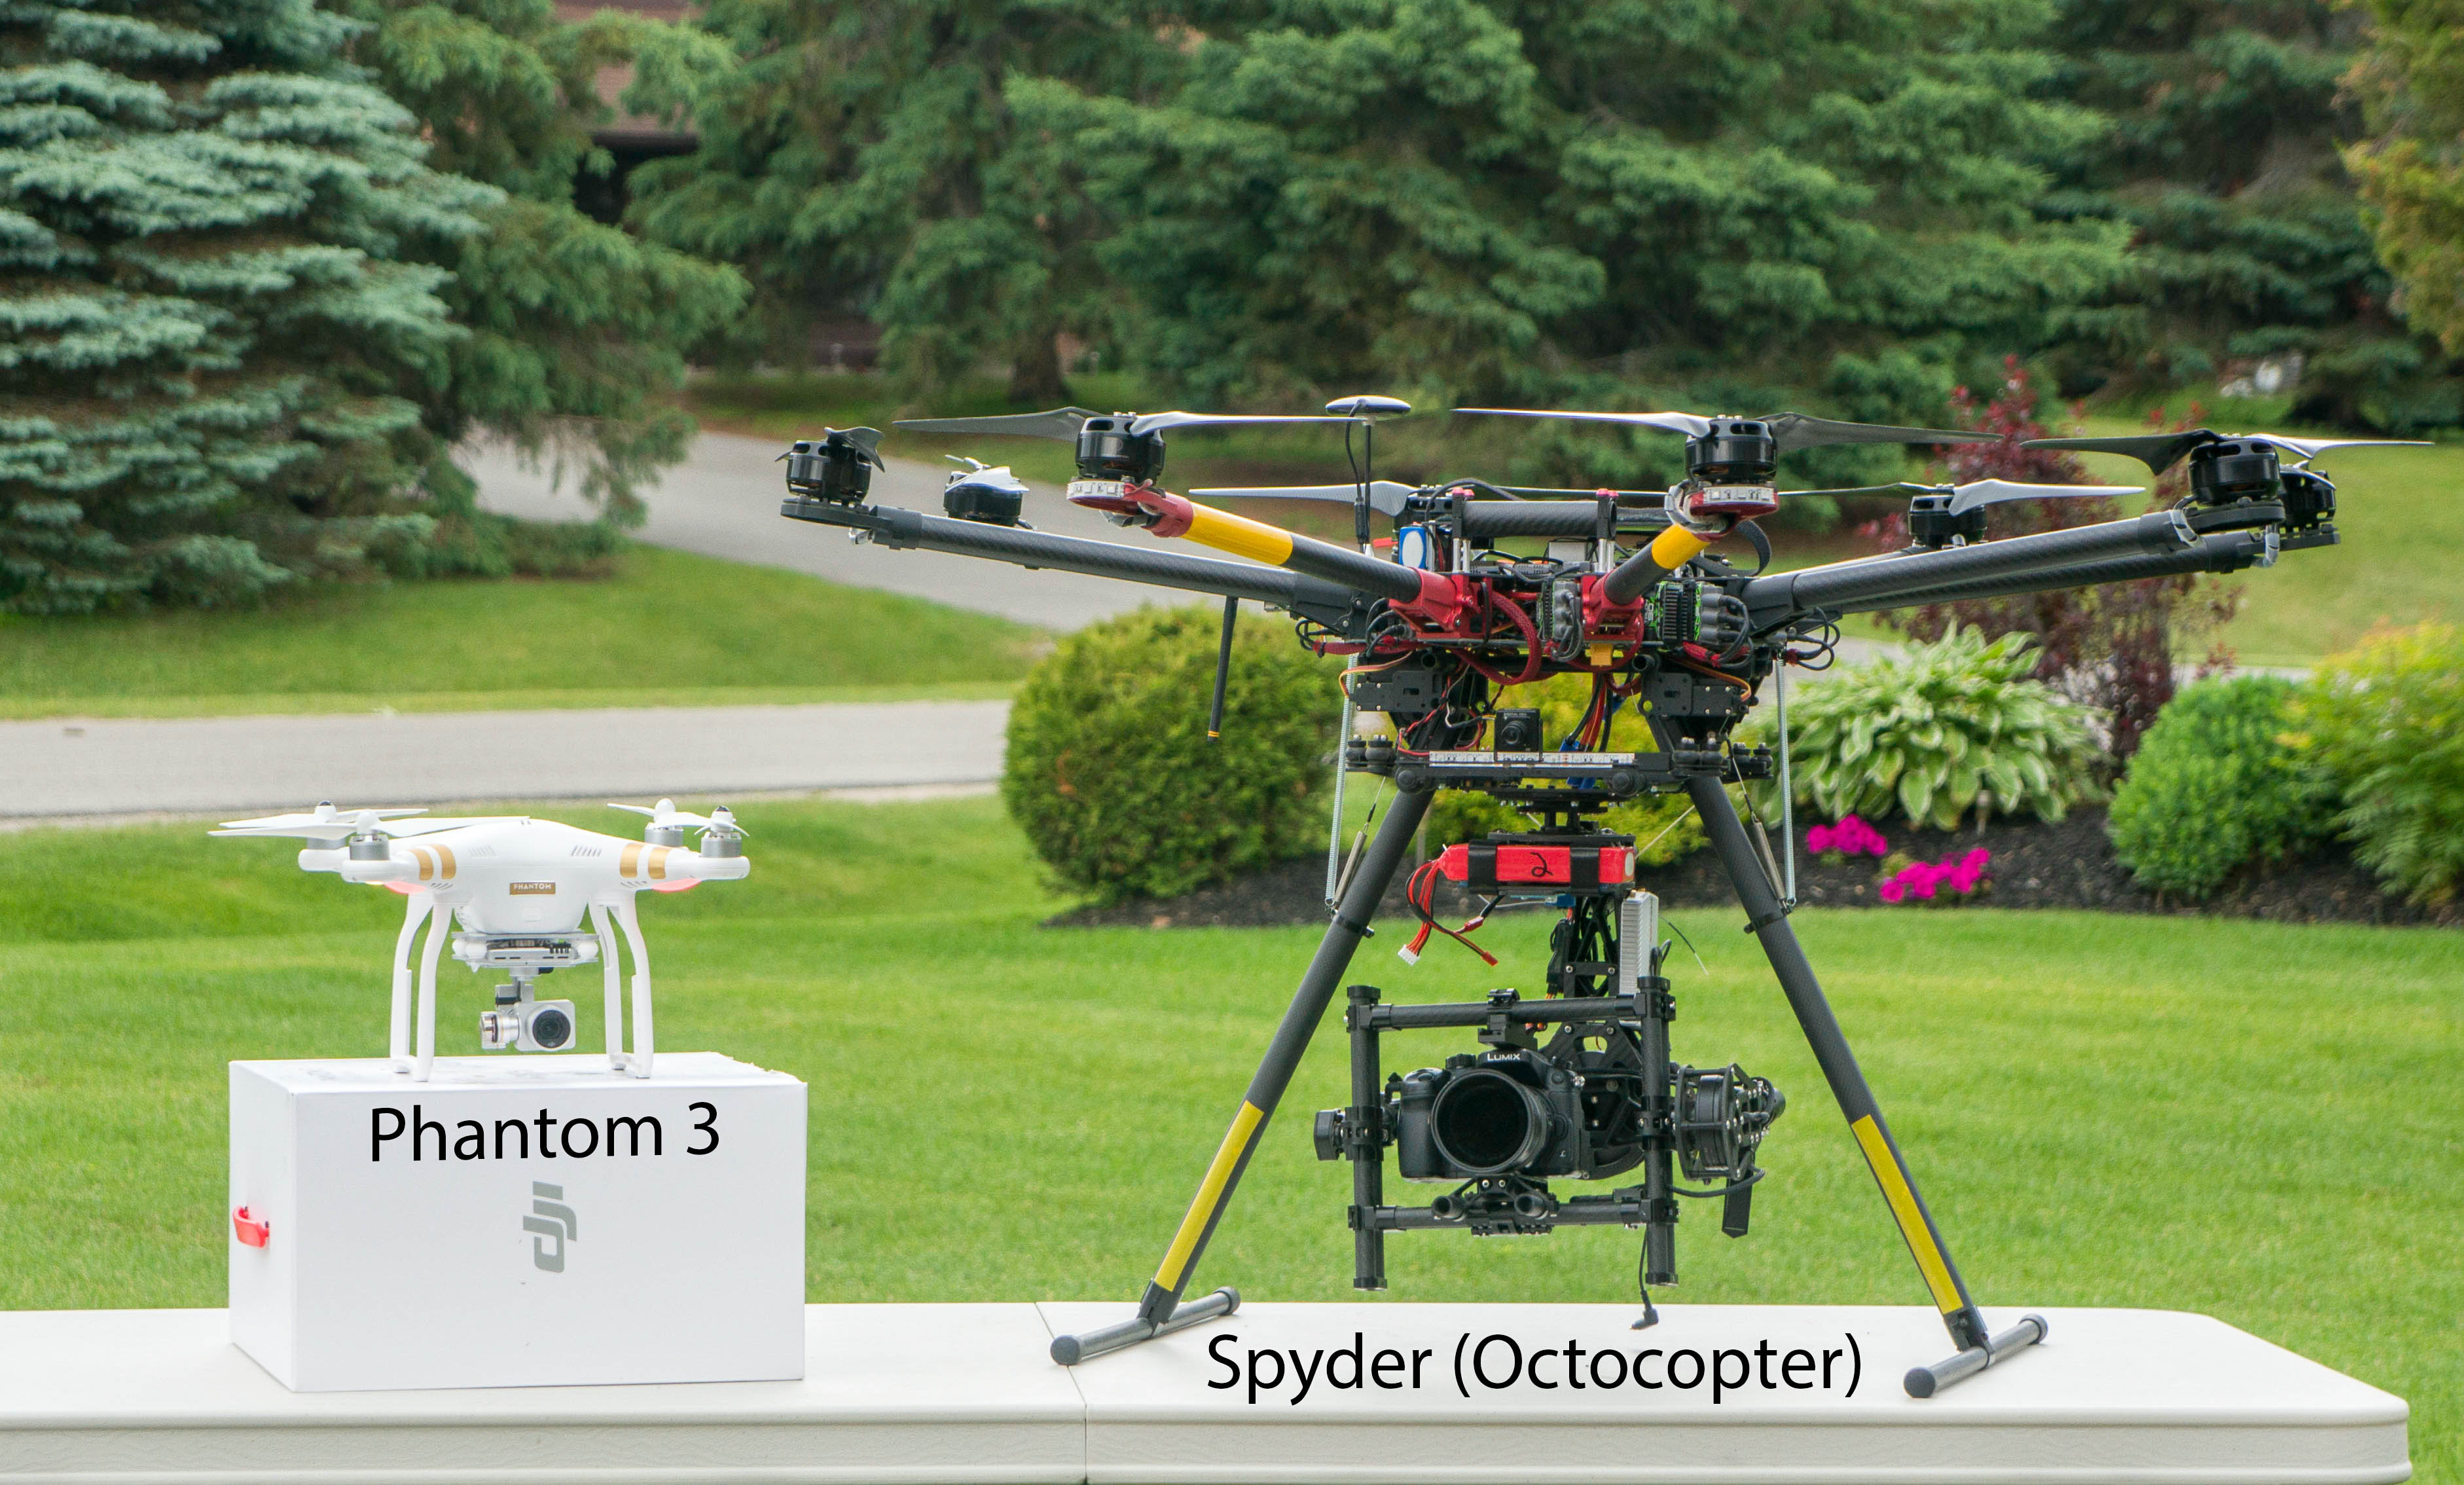 Spyder and Phantom 3 Pro